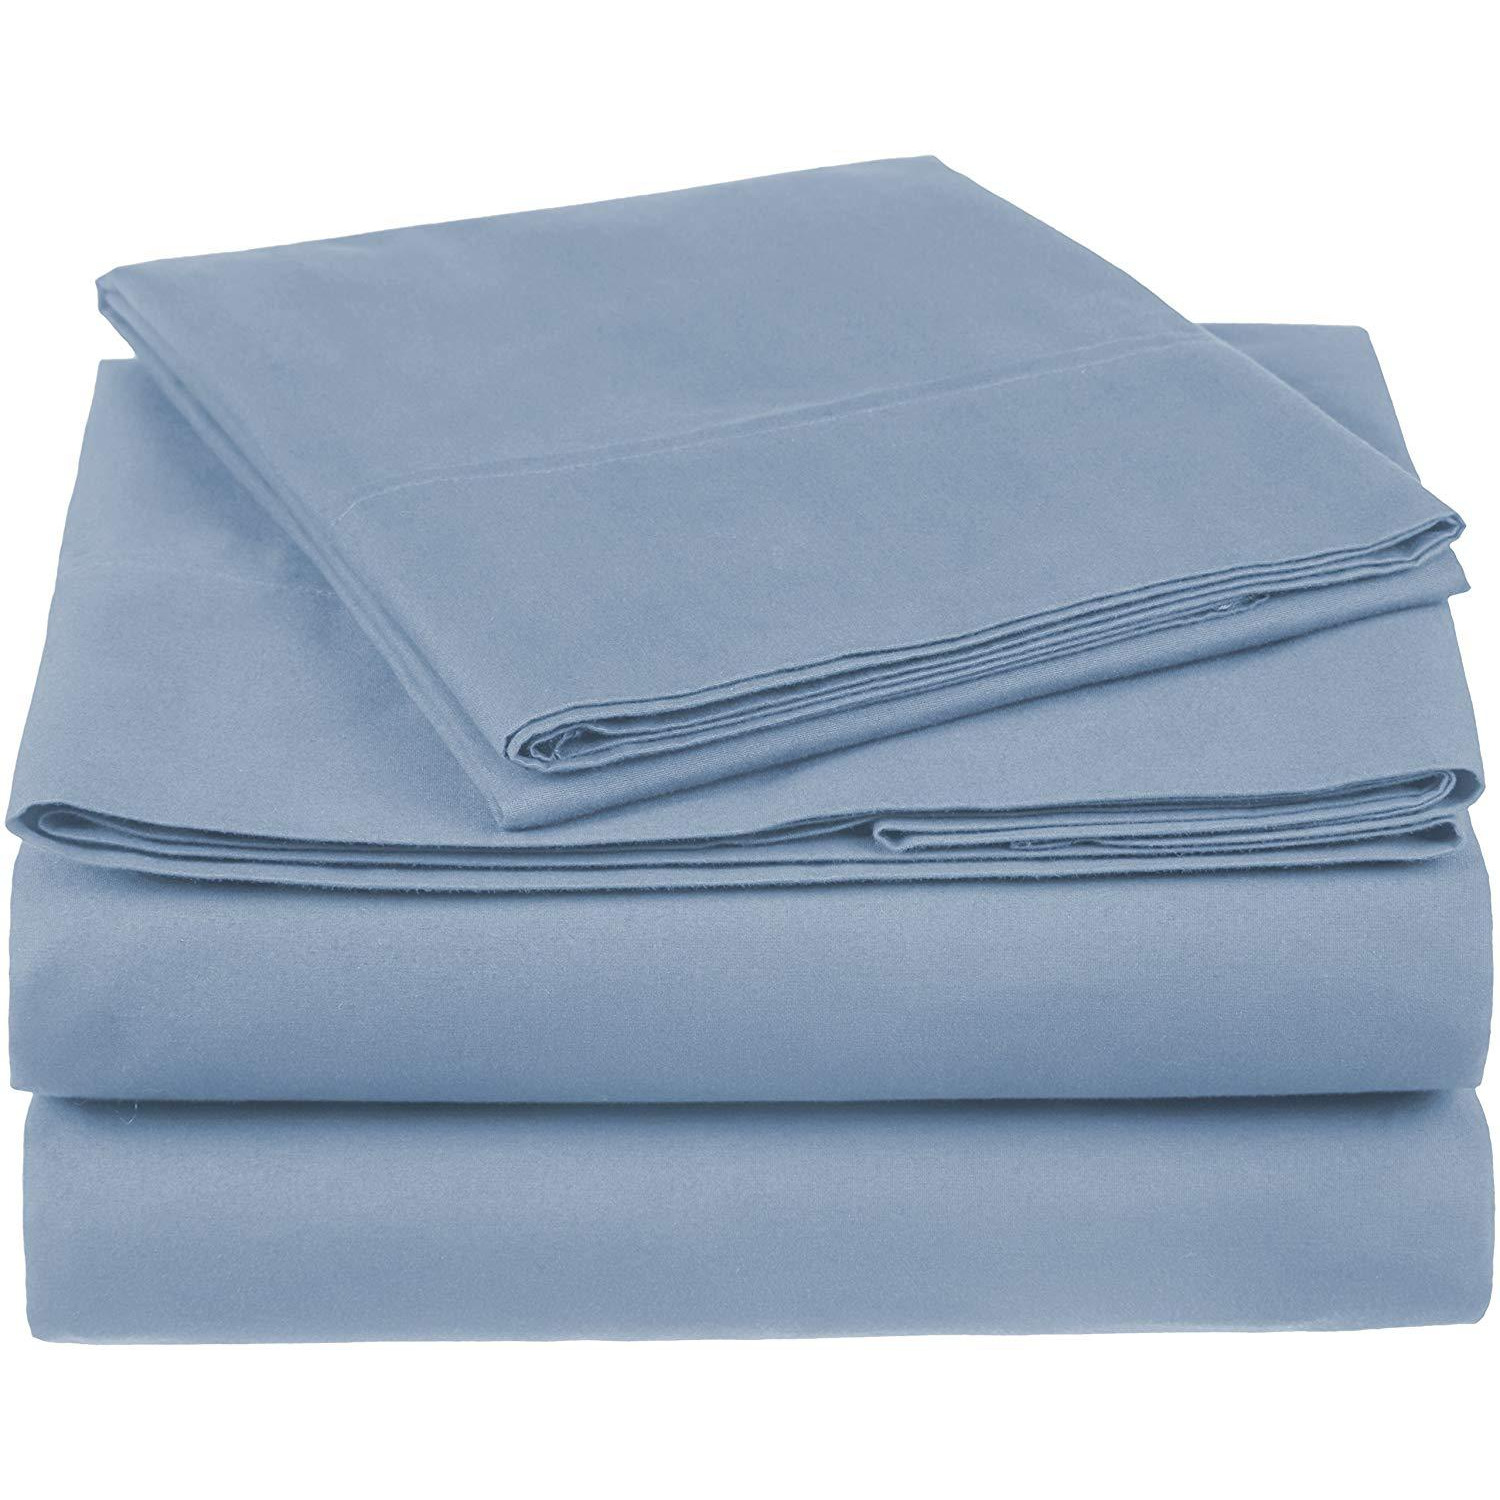 100% Cotton Sheet Set - 500 Thread Count (Piece:6 PIECE, Size:QUEEN, Color:BLUE)